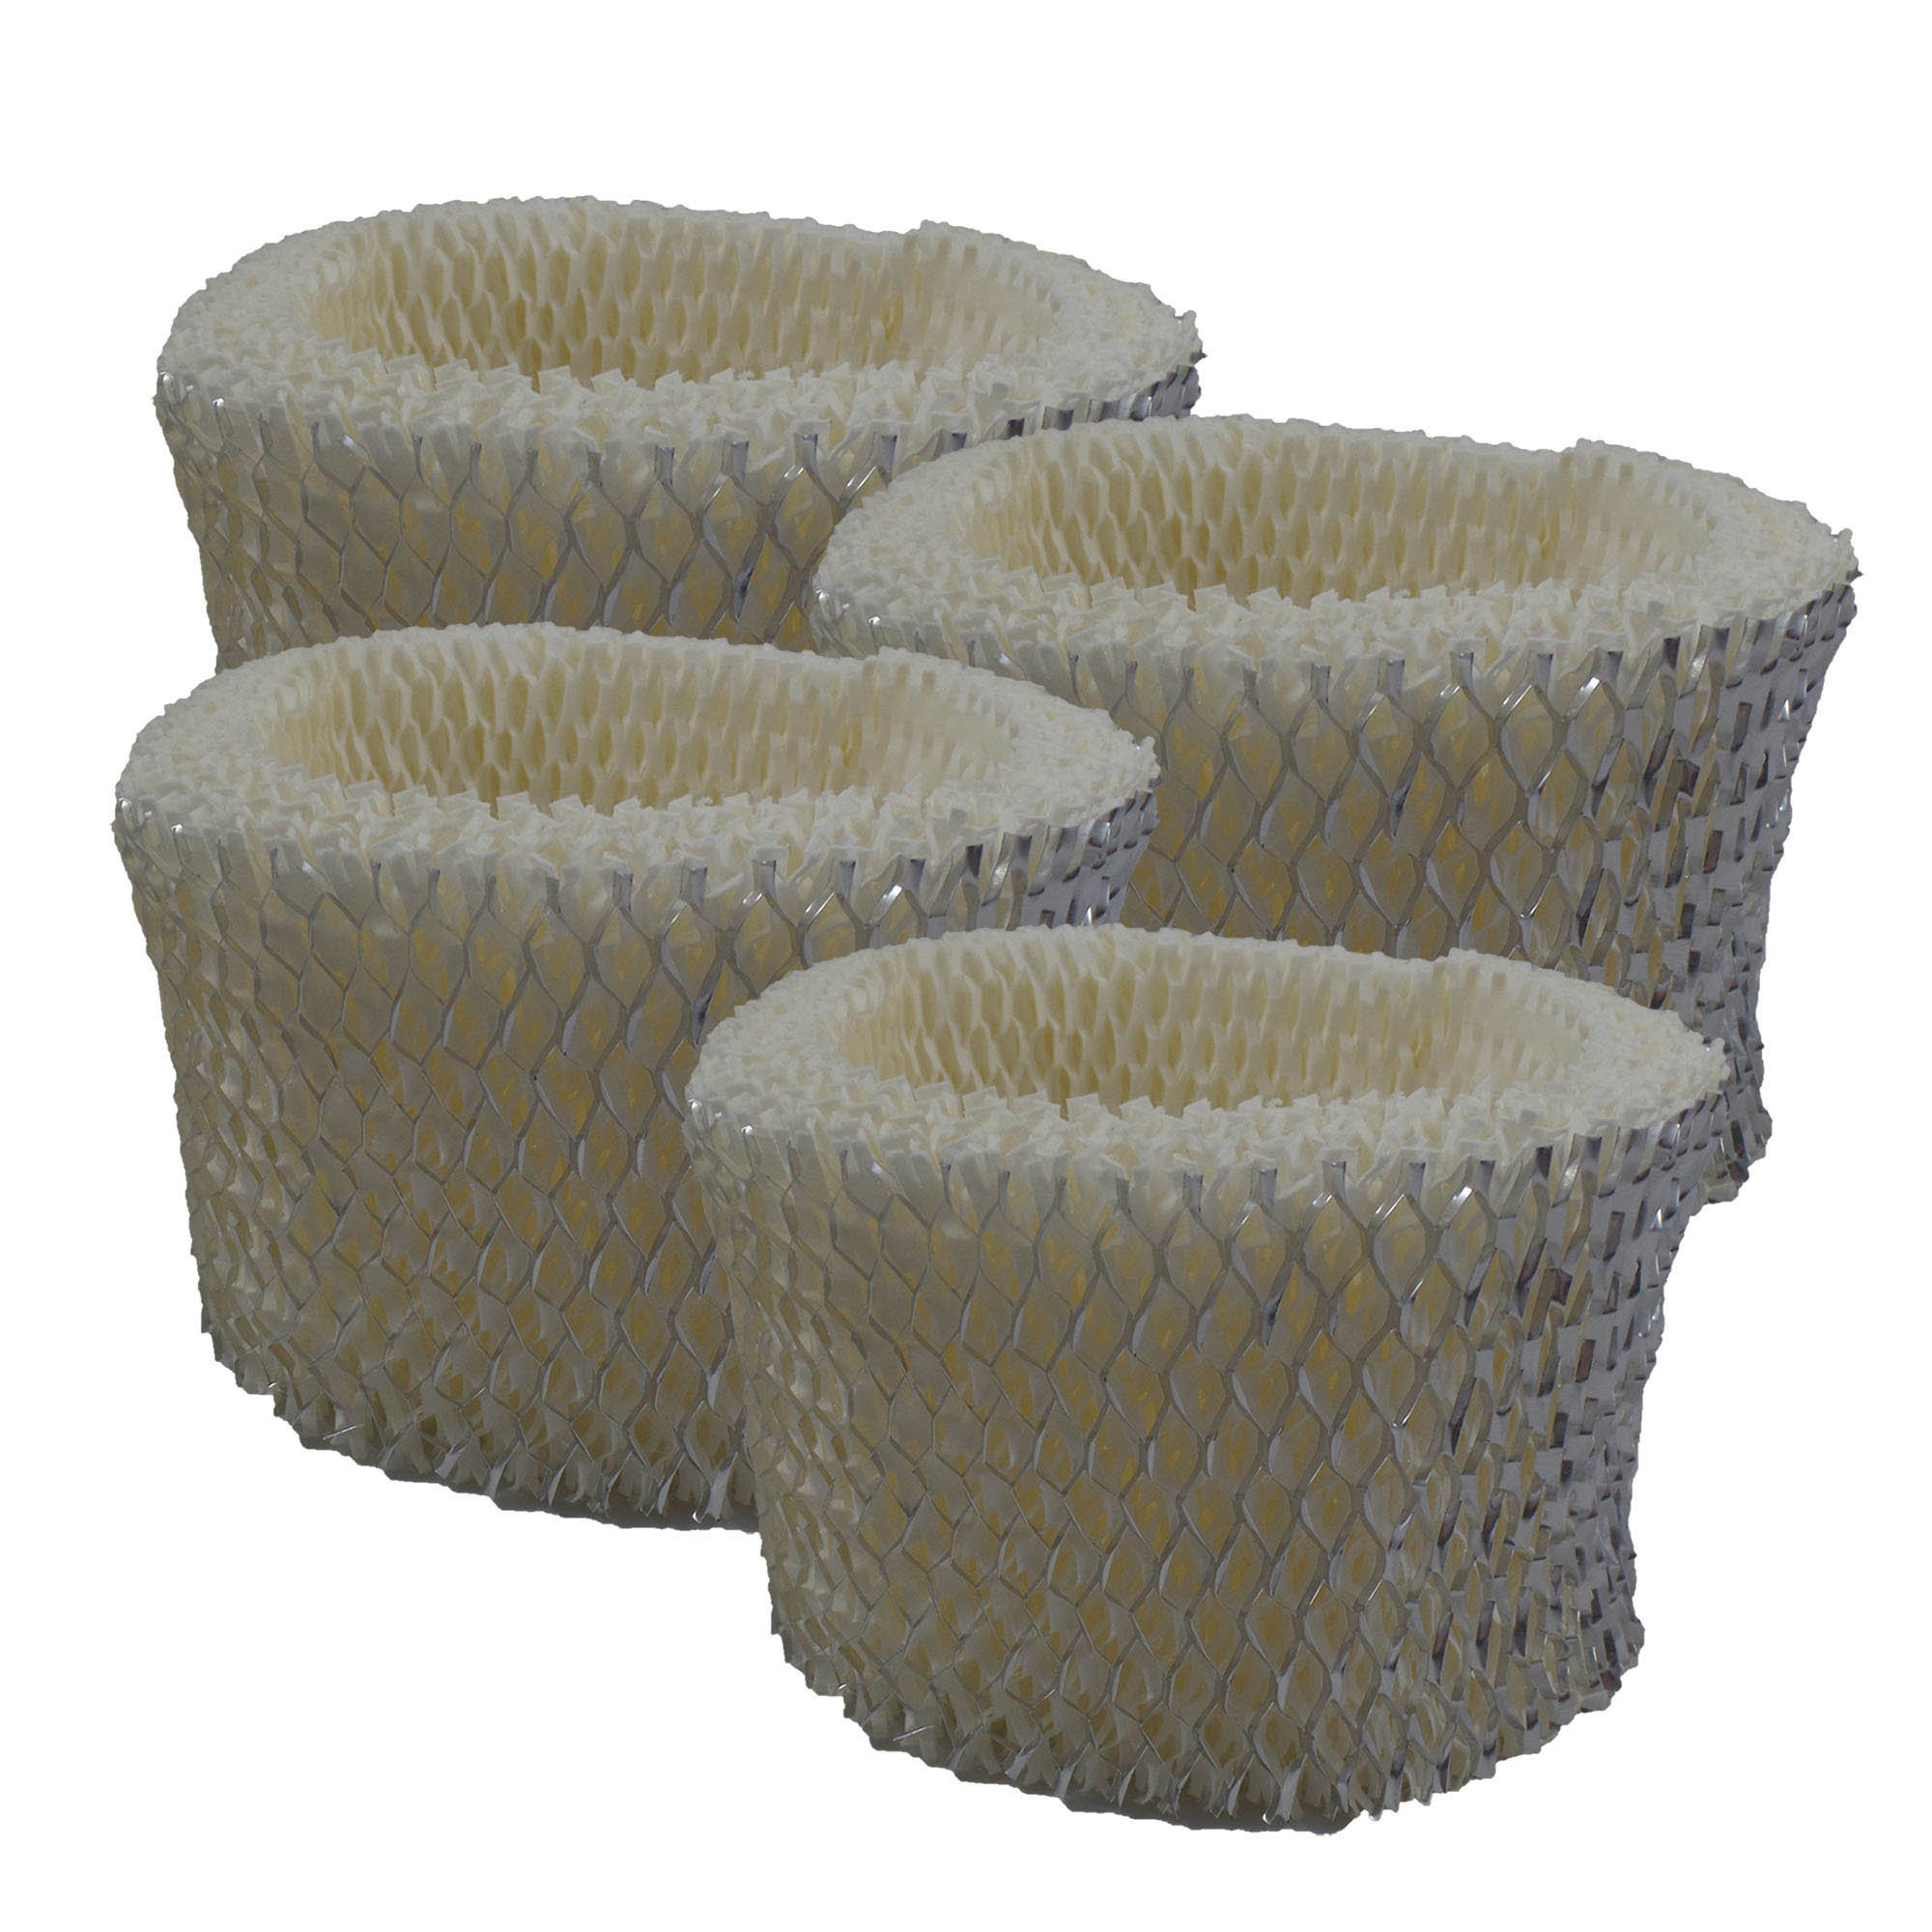 4-PACK Air Filter Factory Compatible Replacement For Holmes HM1740, HM1760, HM1761, HM2005, HM2030, HM2409 Humidifier Filter